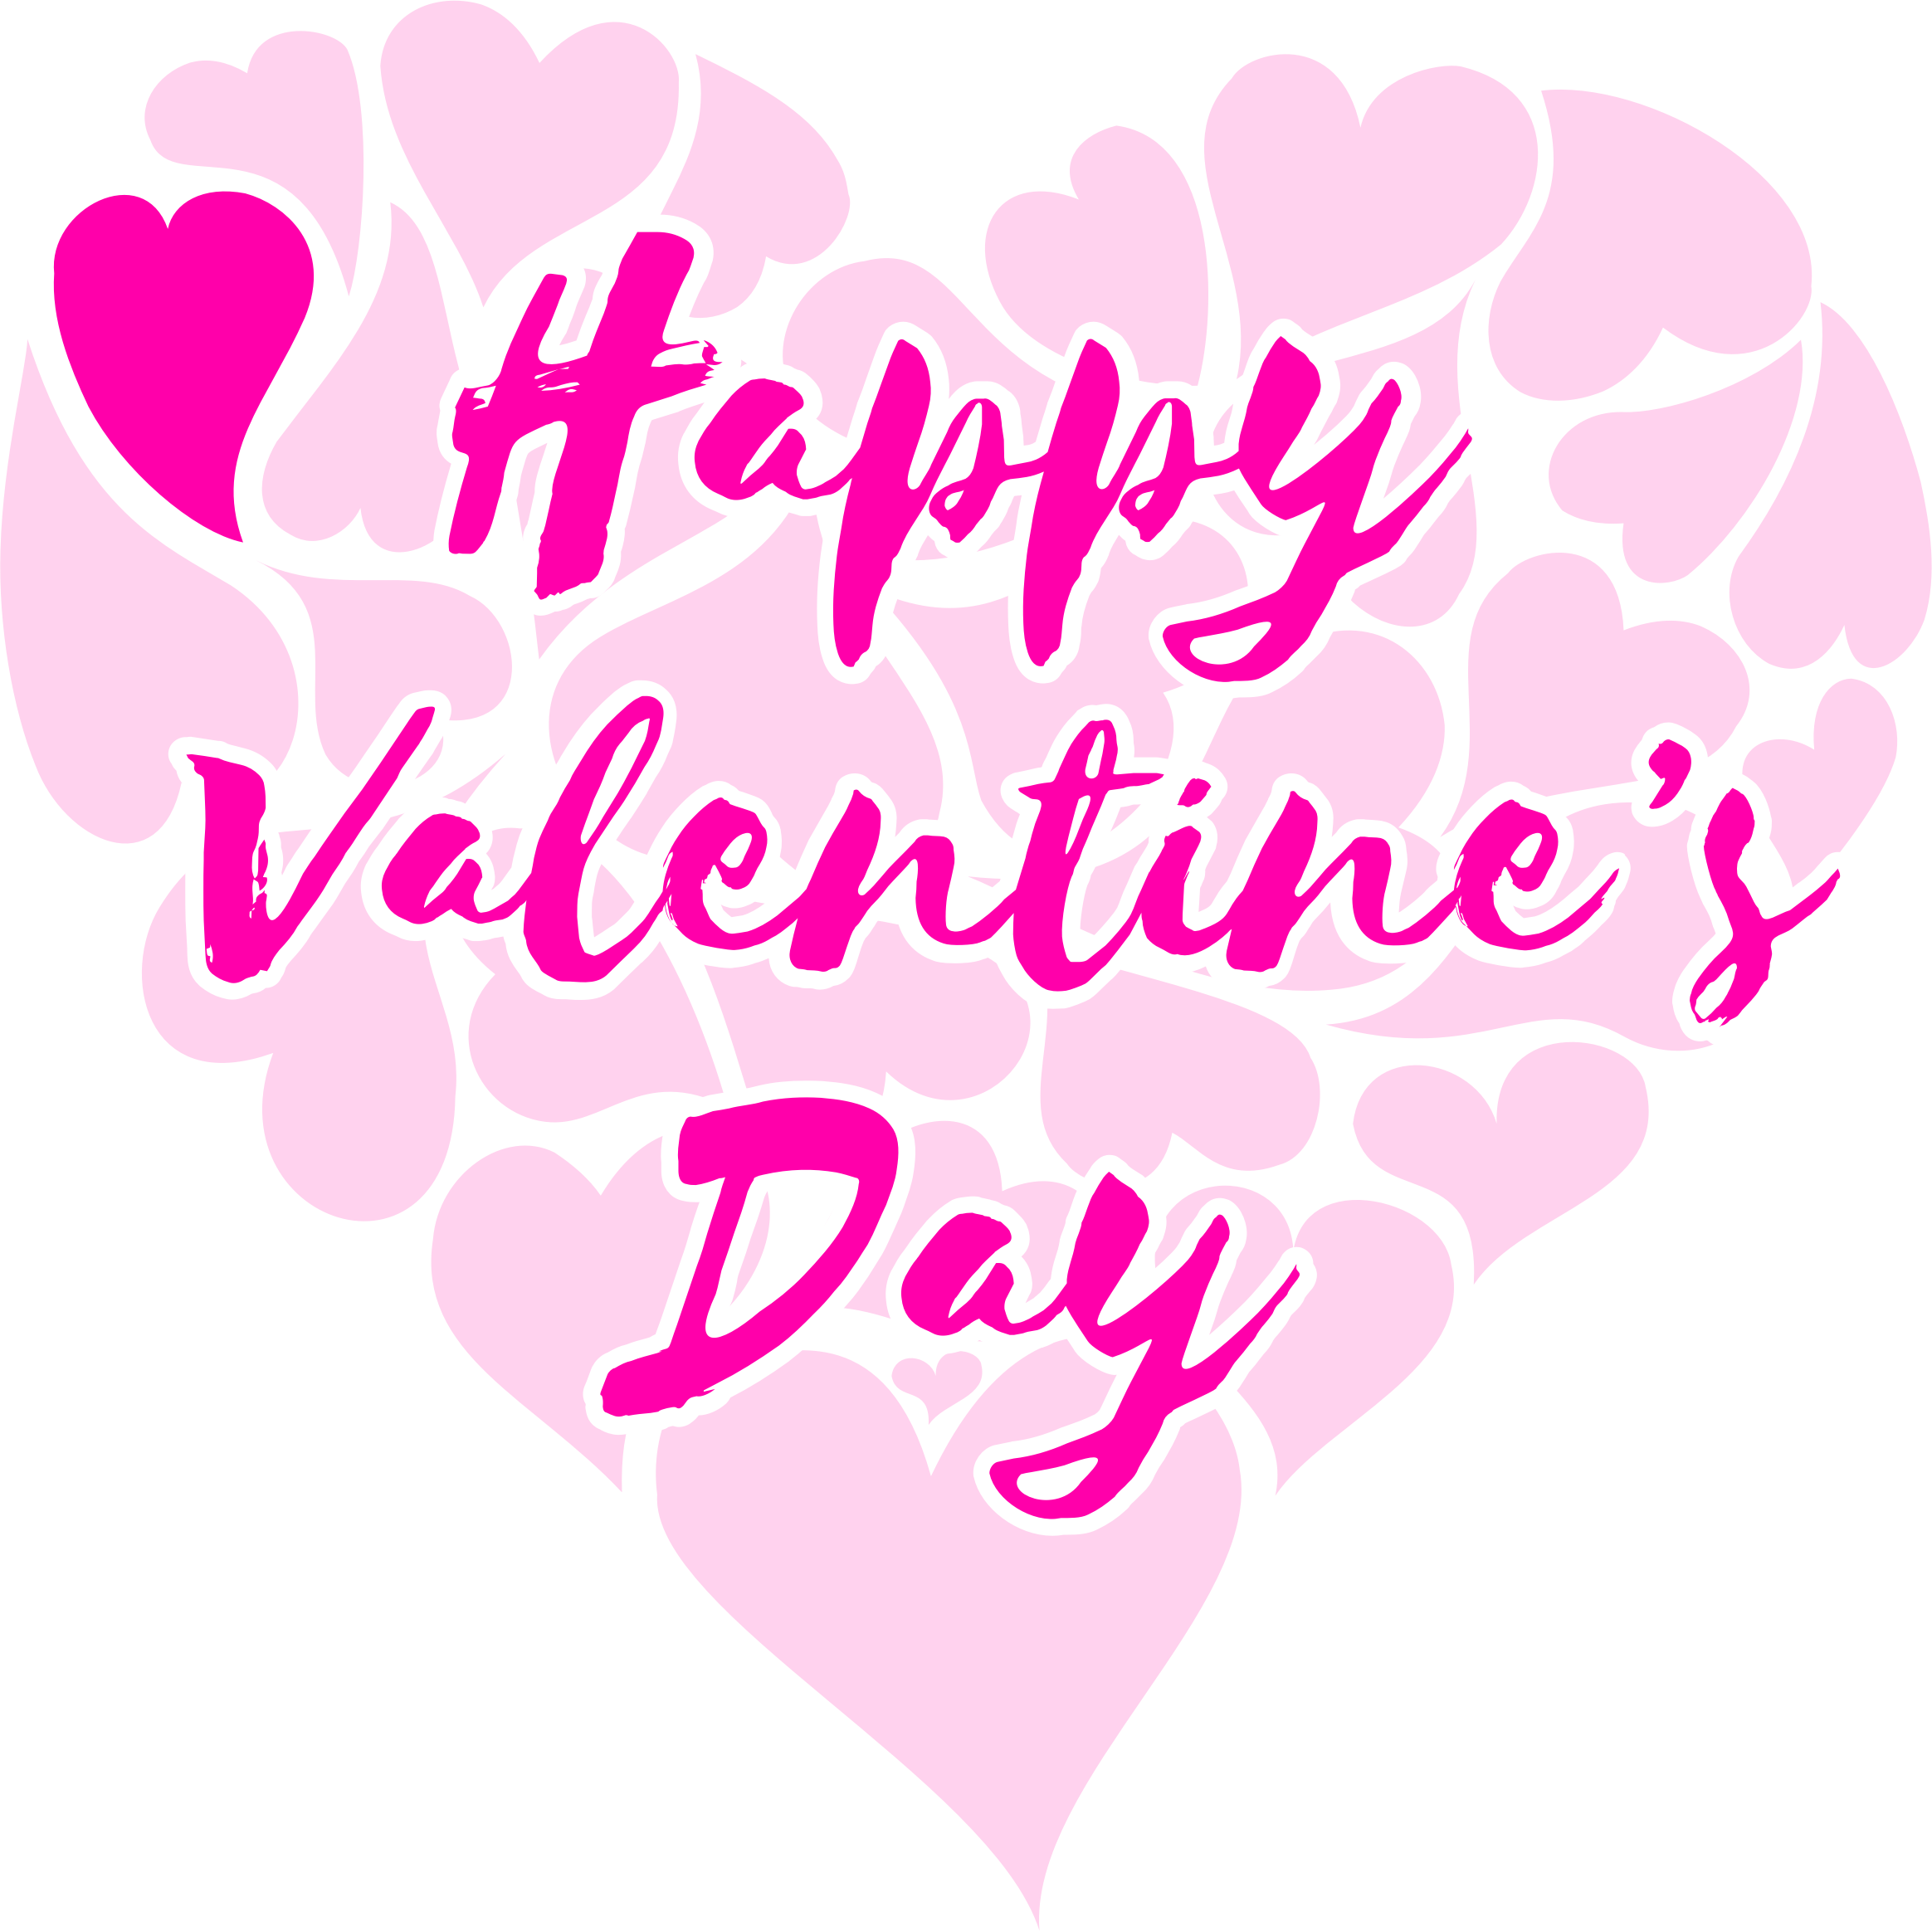 Clipart valentines day heart jpg royalty free download Clipart - Happy Valentine's Day Title with Hearts jpg royalty free download